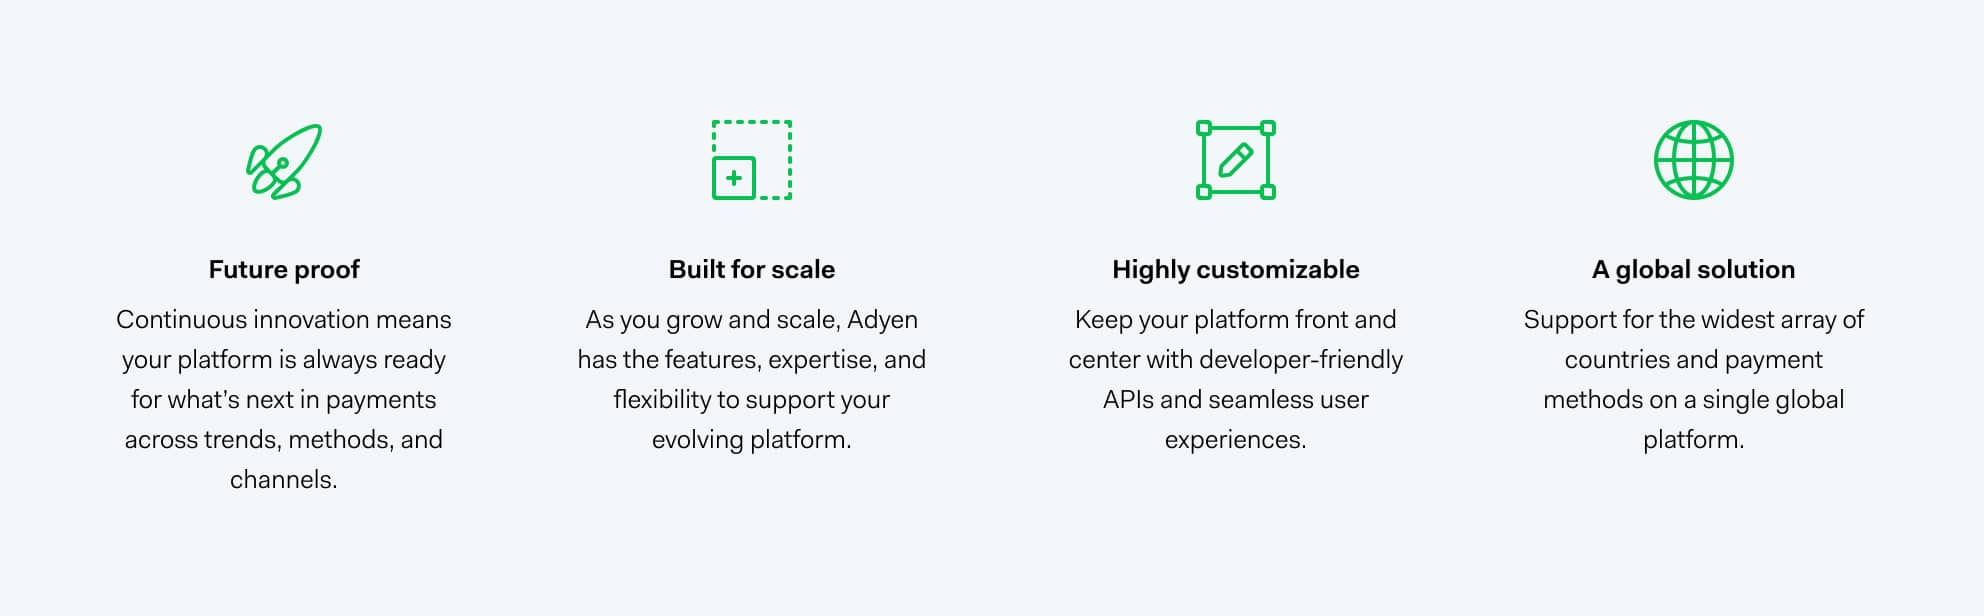 Reasons to chose Adyen for payments